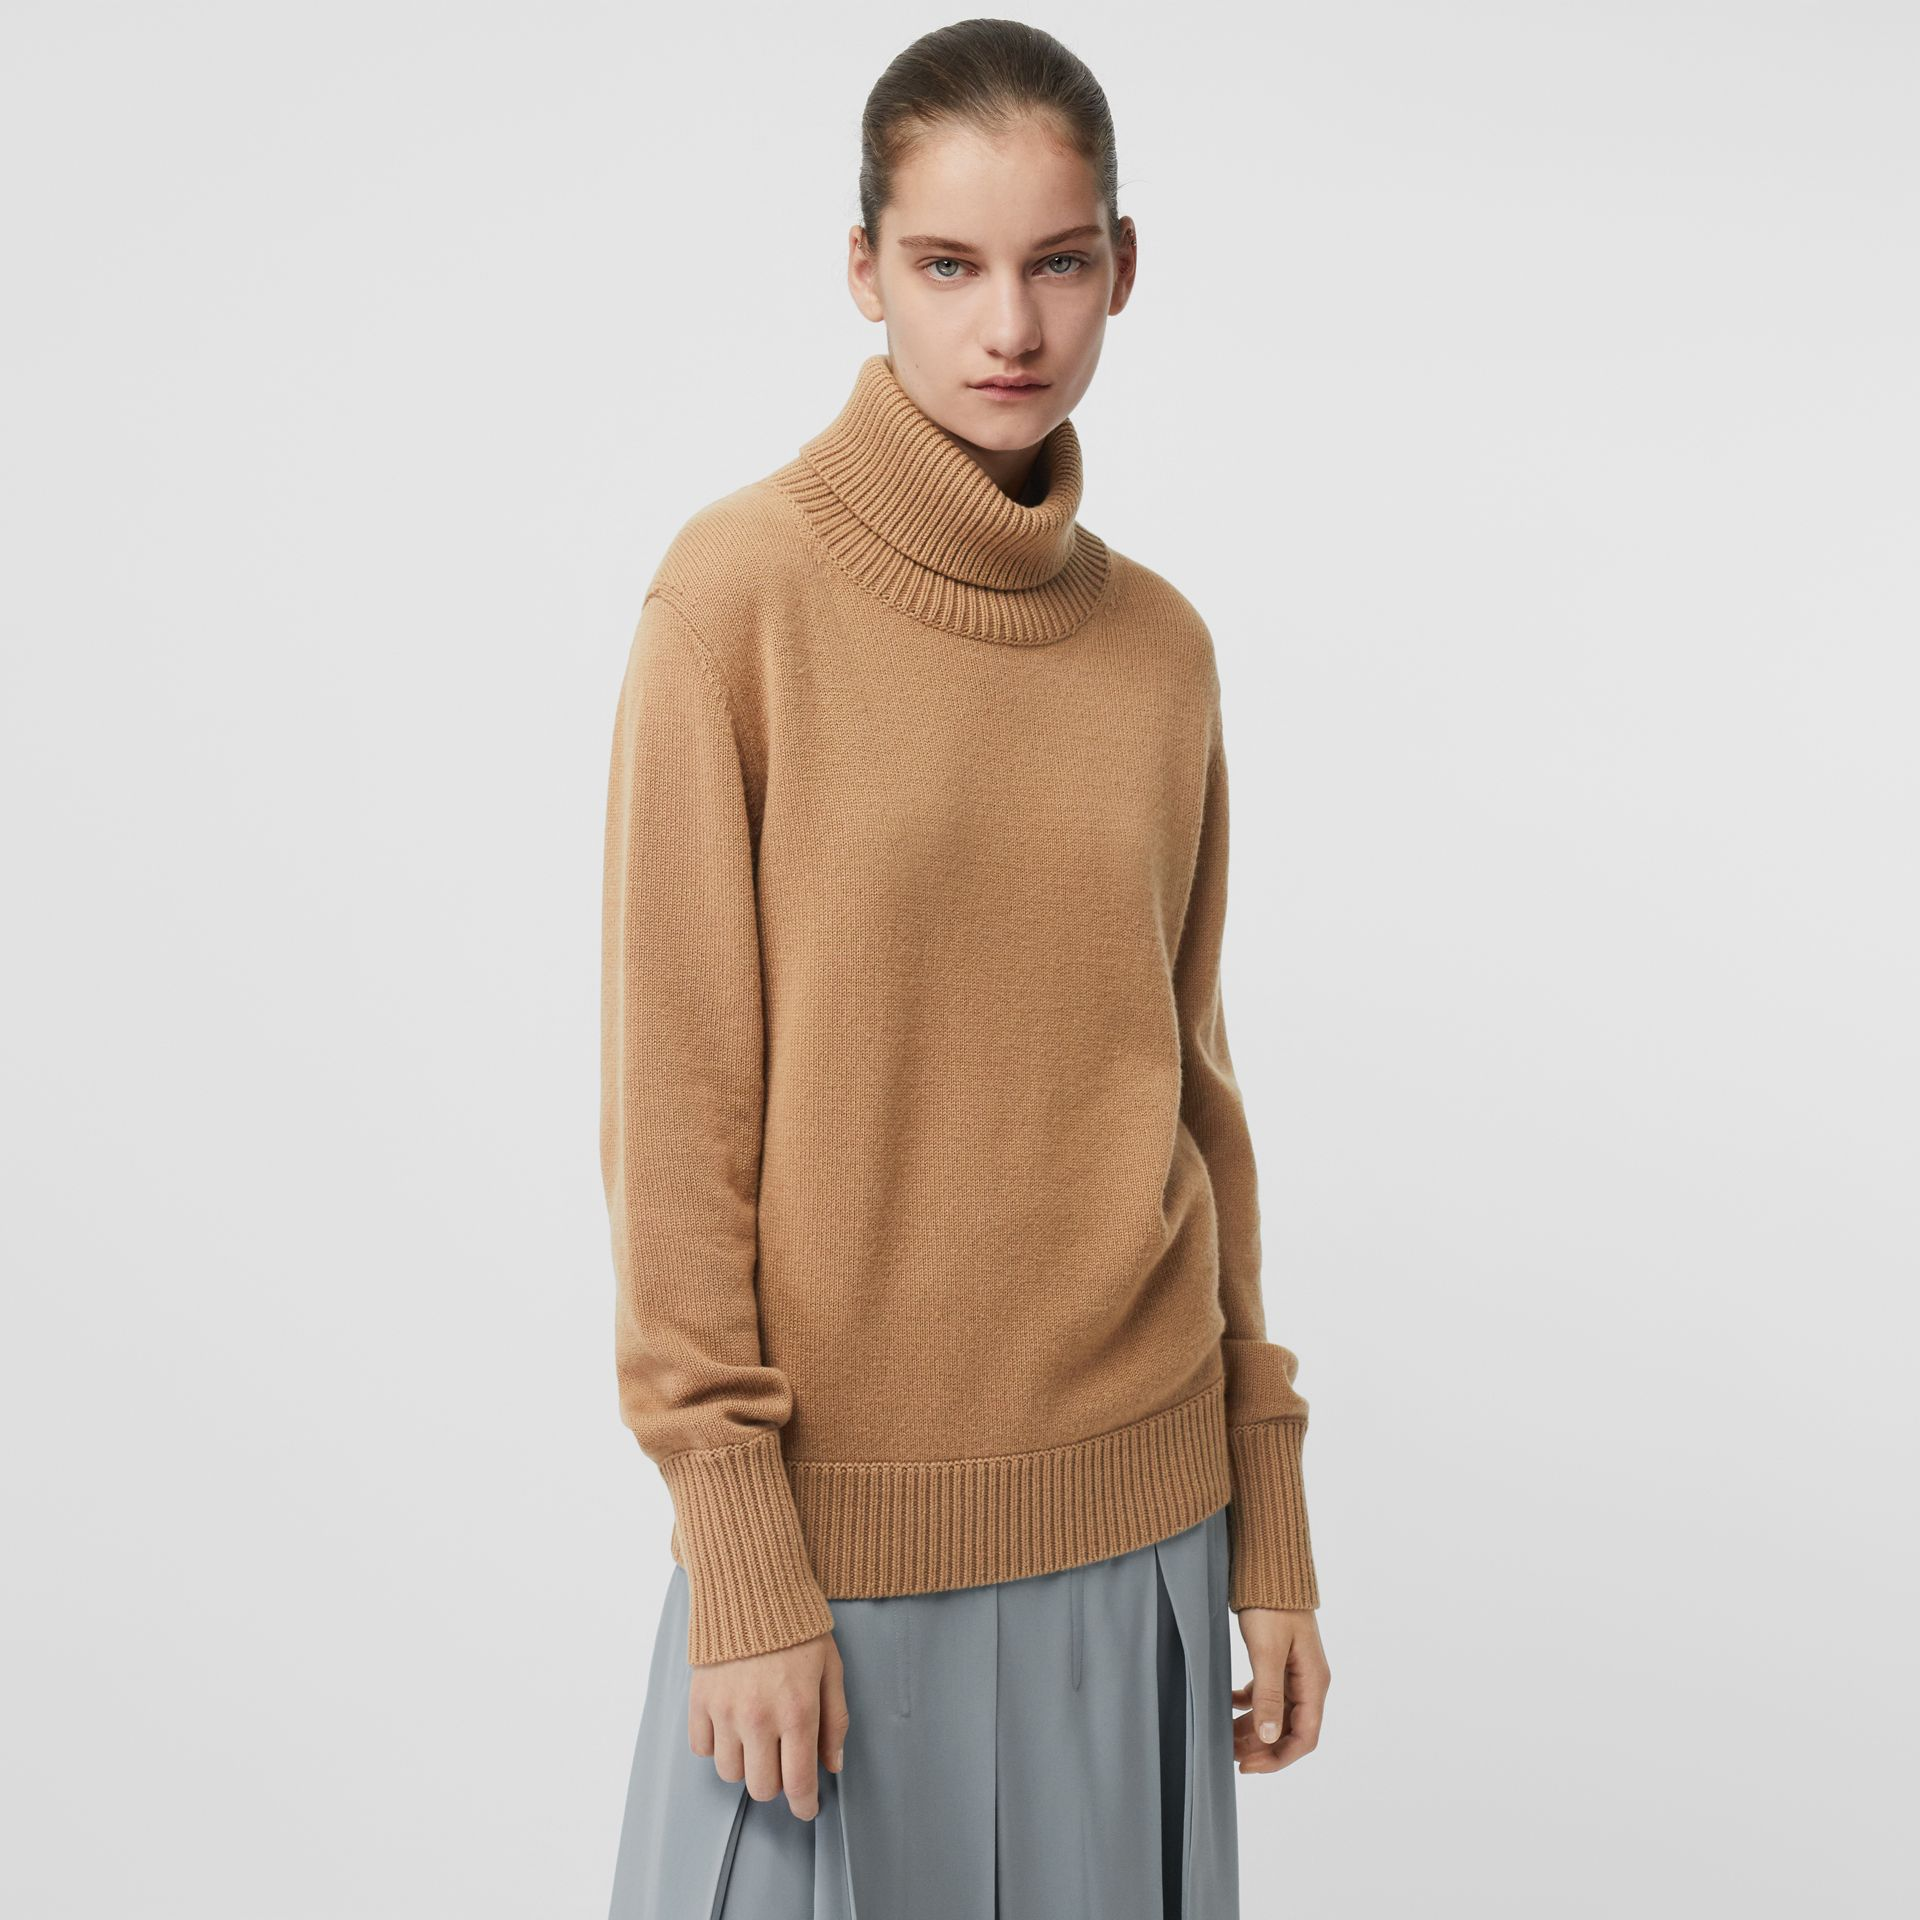 Embroidered Crest Cashmere Roll-neck Sweater in Camel - Women | Burberry United Kingdom - gallery image 0